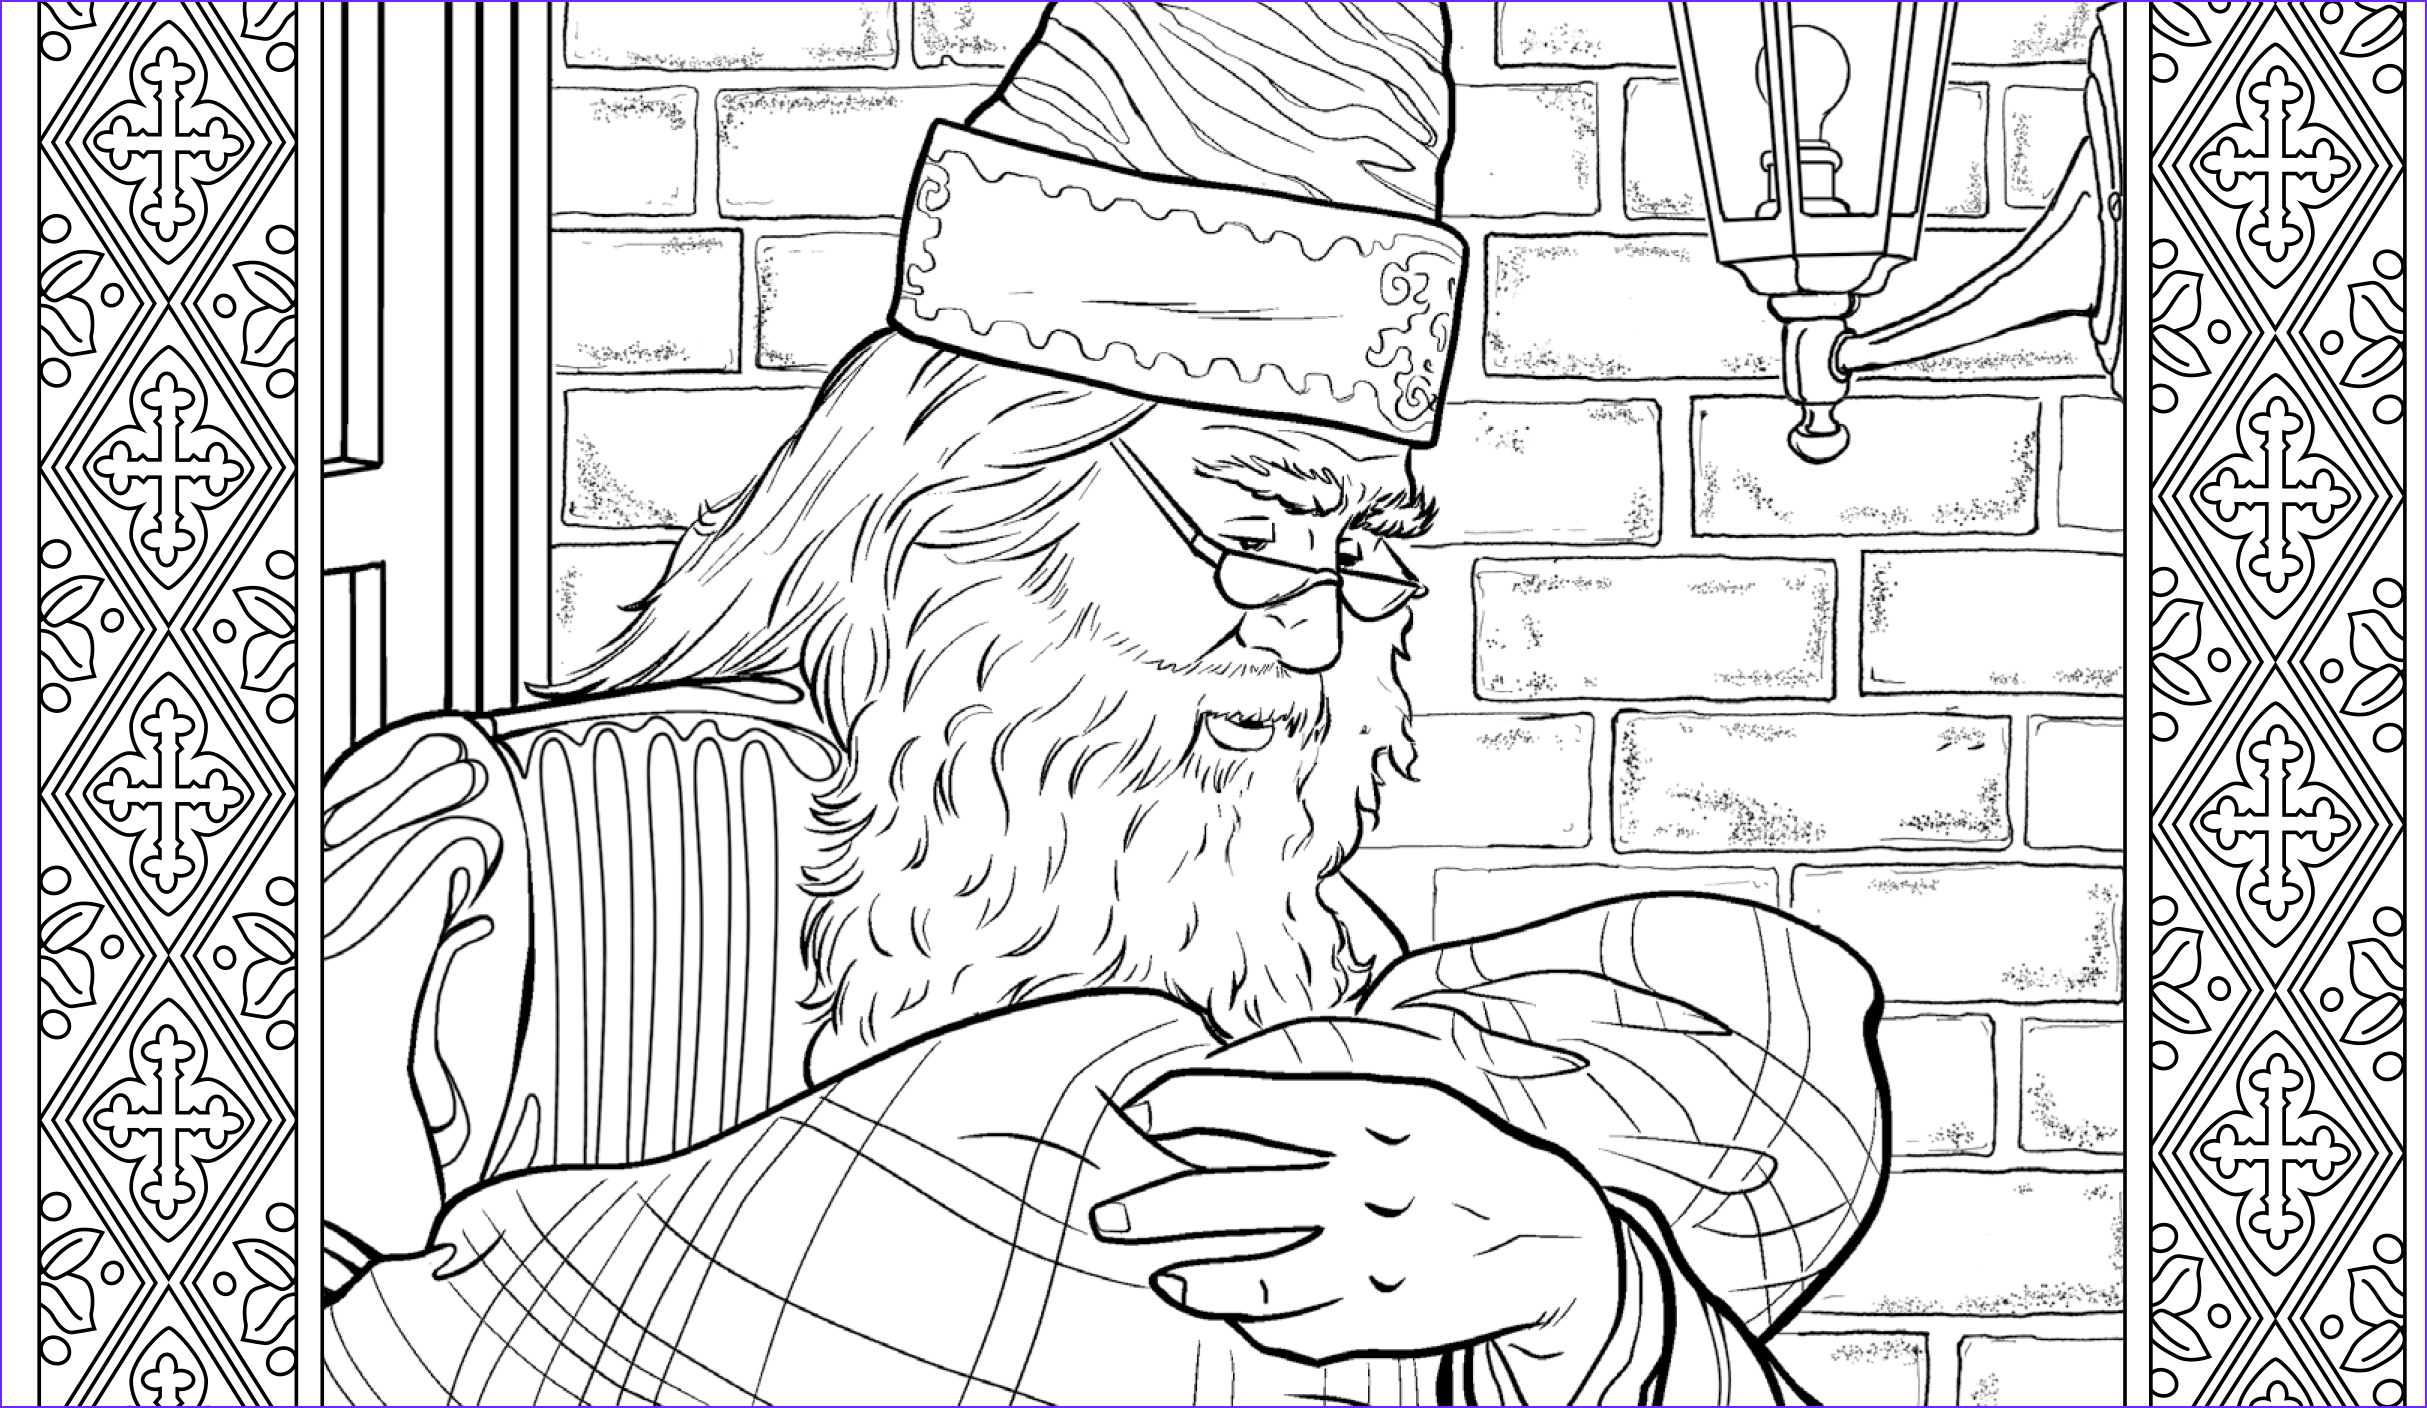 Harry Potter Coloring Books Best Of Stock Get A Sneak Peek Of the New Harry Potter Coloring Book